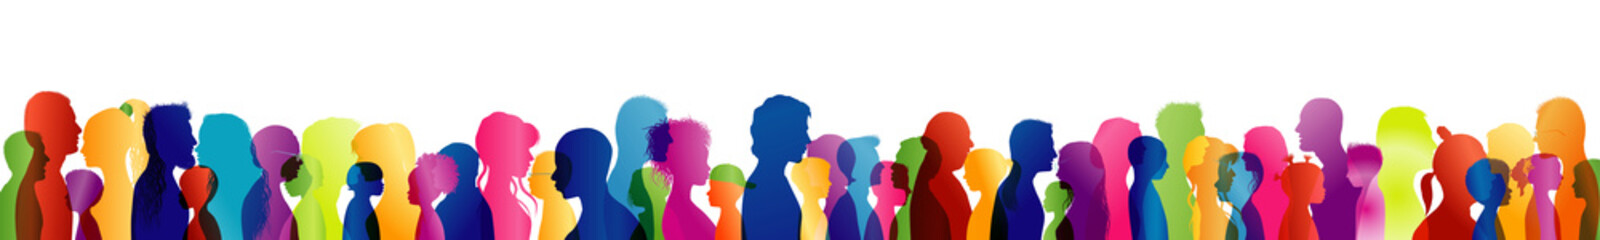 Concept of solidarity or communication between different people and of different ages and multi-ethnic. Silhouette colored profile heads. Multiple exposure. Dialogue crowd of many people